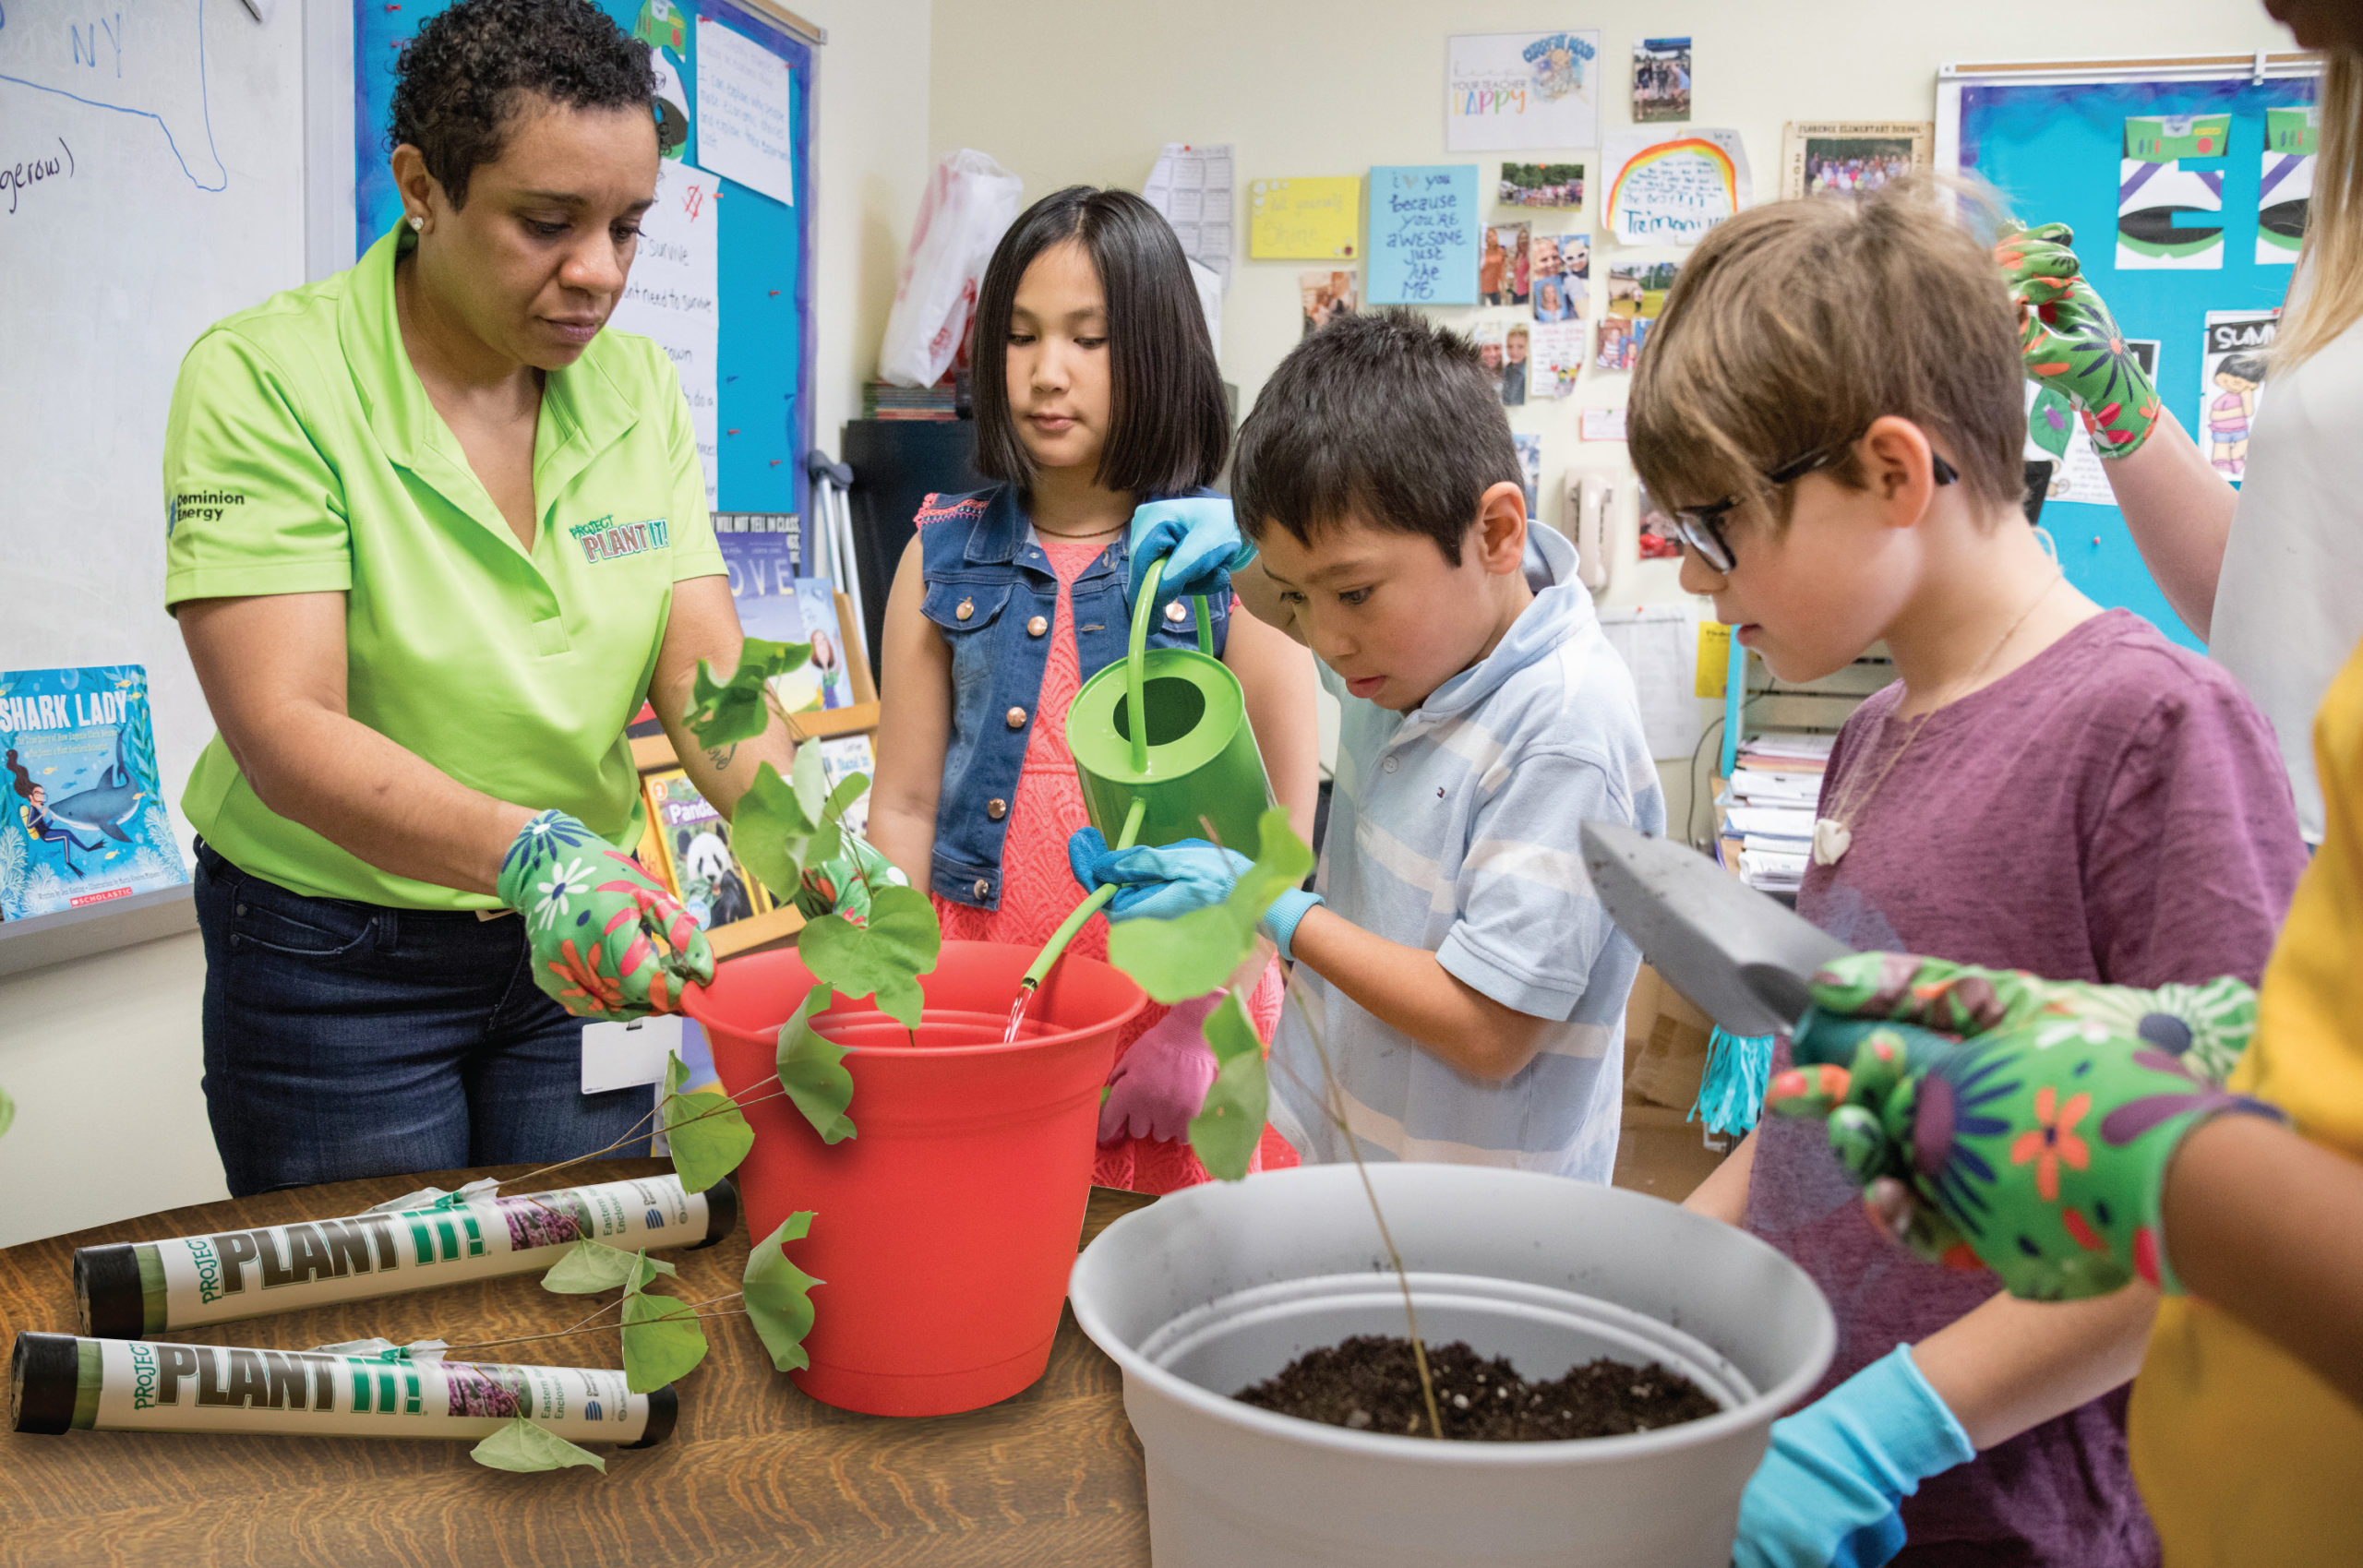 Project Plant It! Connects Students To Trees And Environment